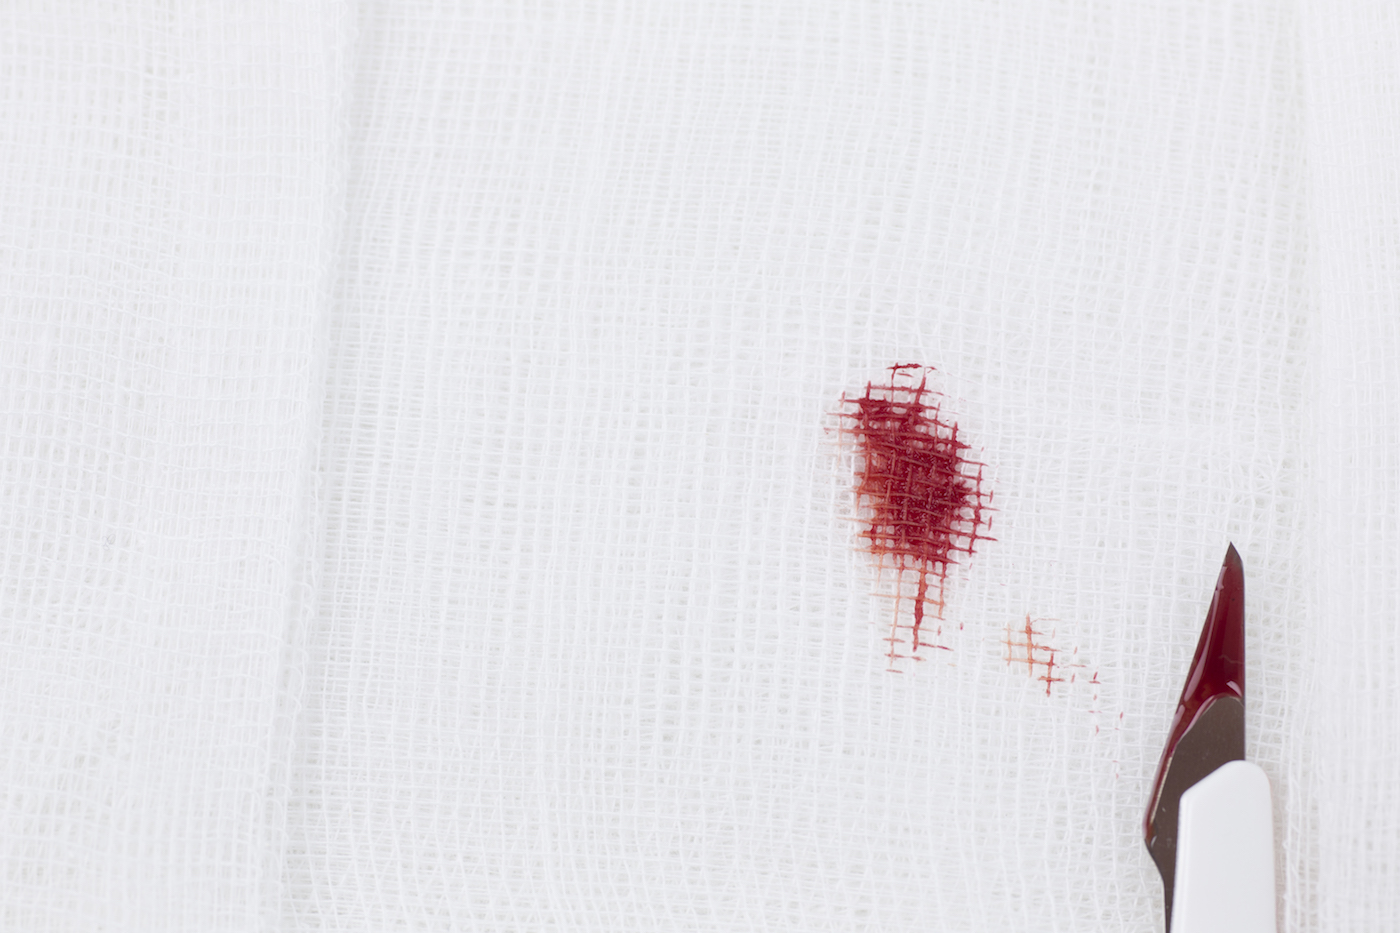 blood stain on white gauze